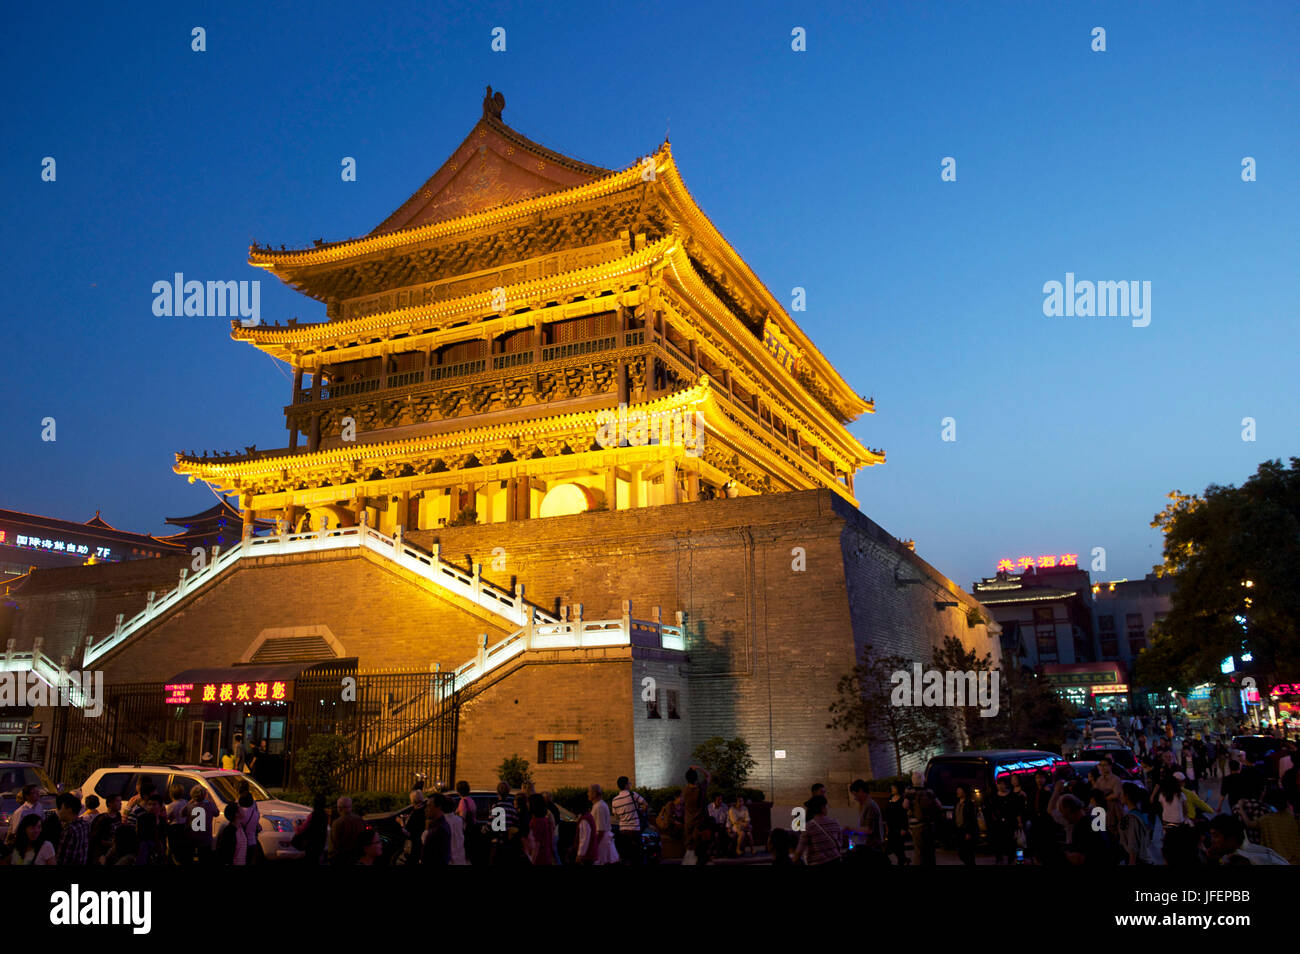 China, Shaanxi province, Xi' An, Drum tower - Stock Image